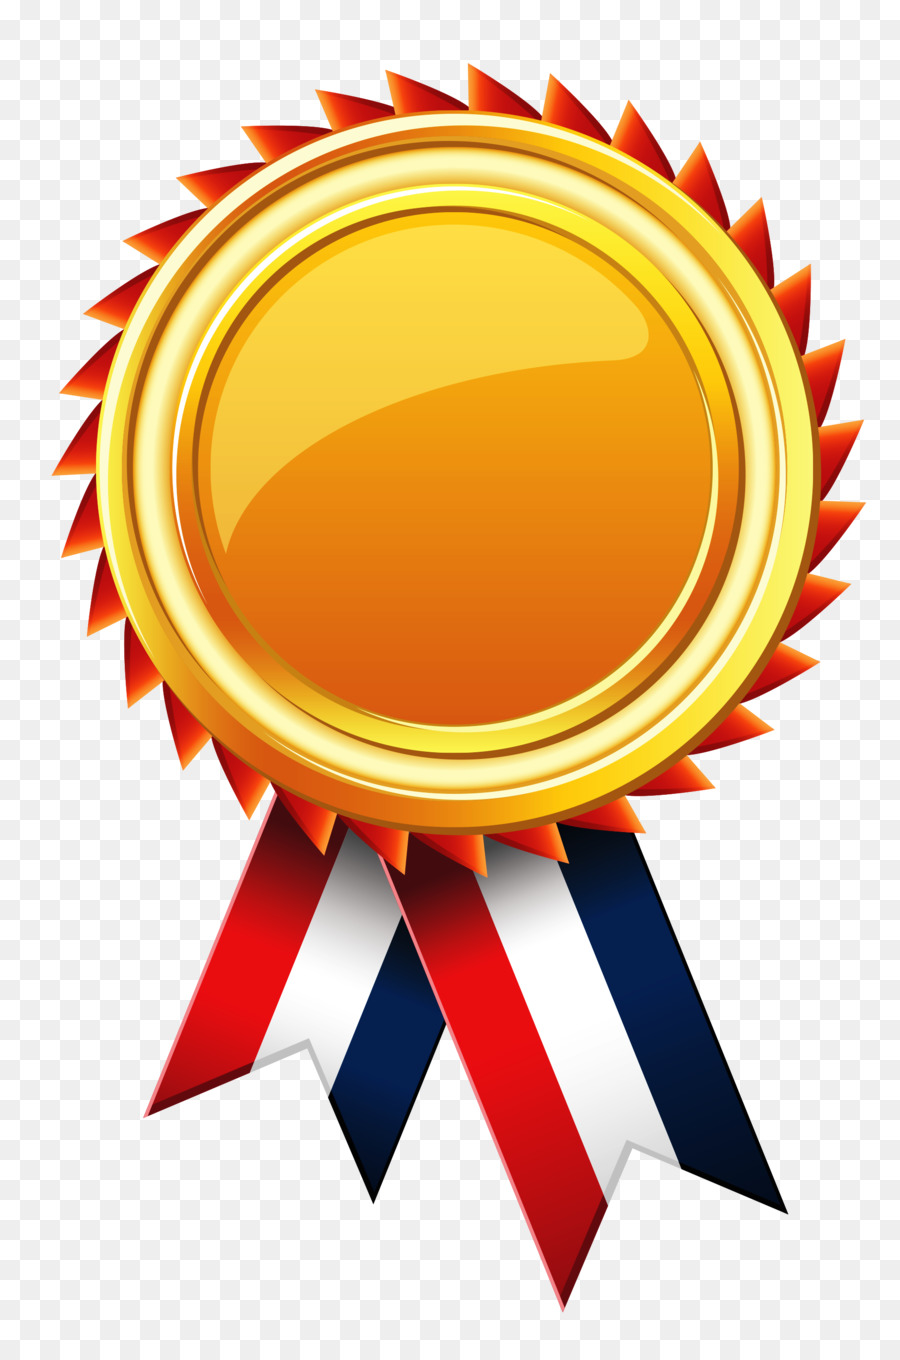 Badge clipart icon. Medal png download free